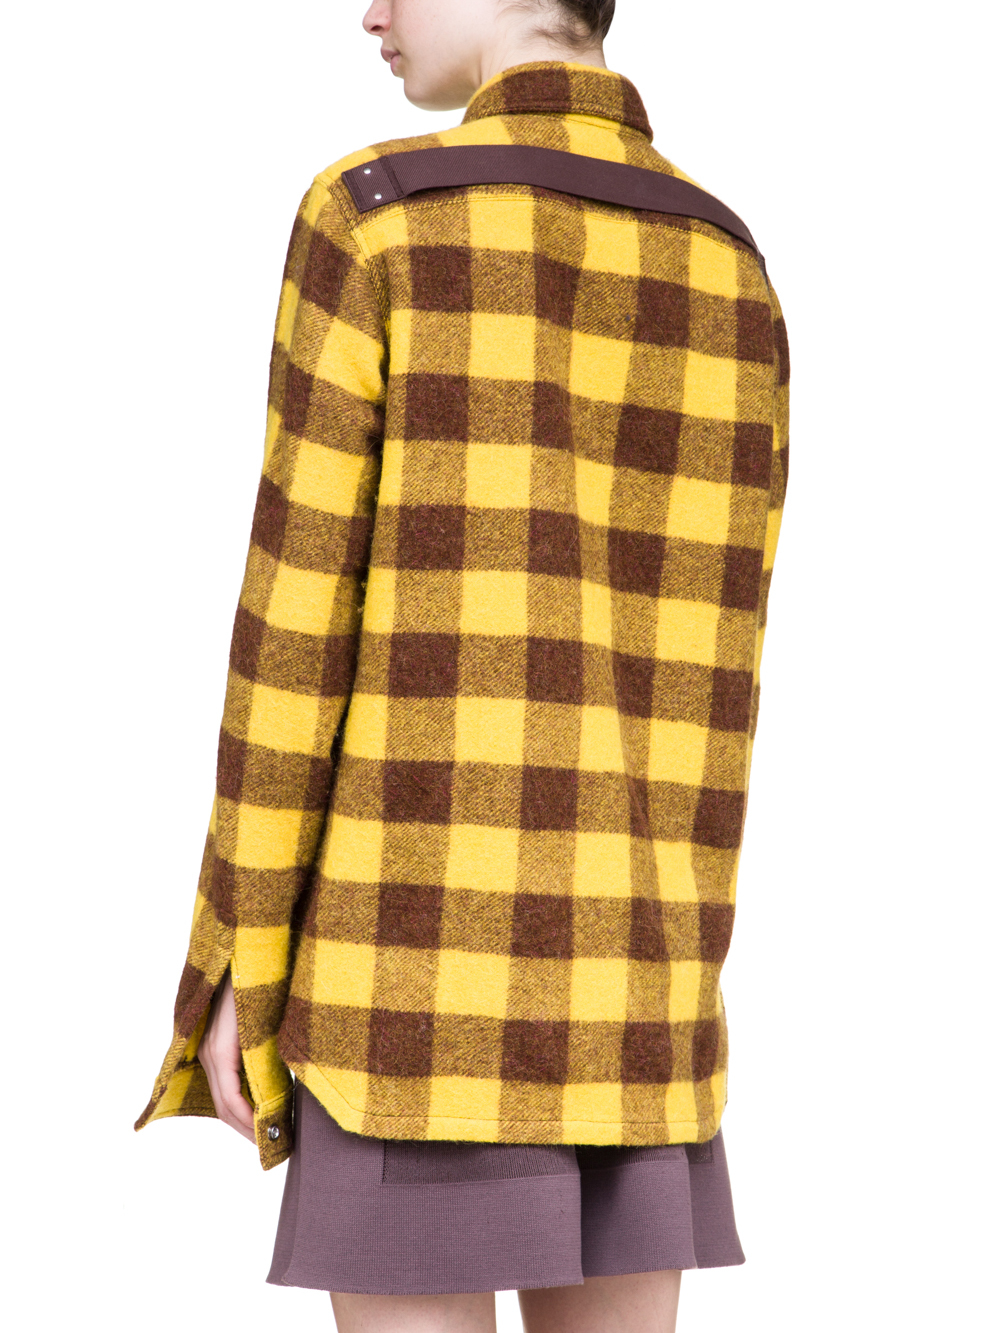 RICK OWENS FW18 SISYPHUS OFF-THE-RUNWAY OUTERSHIRT